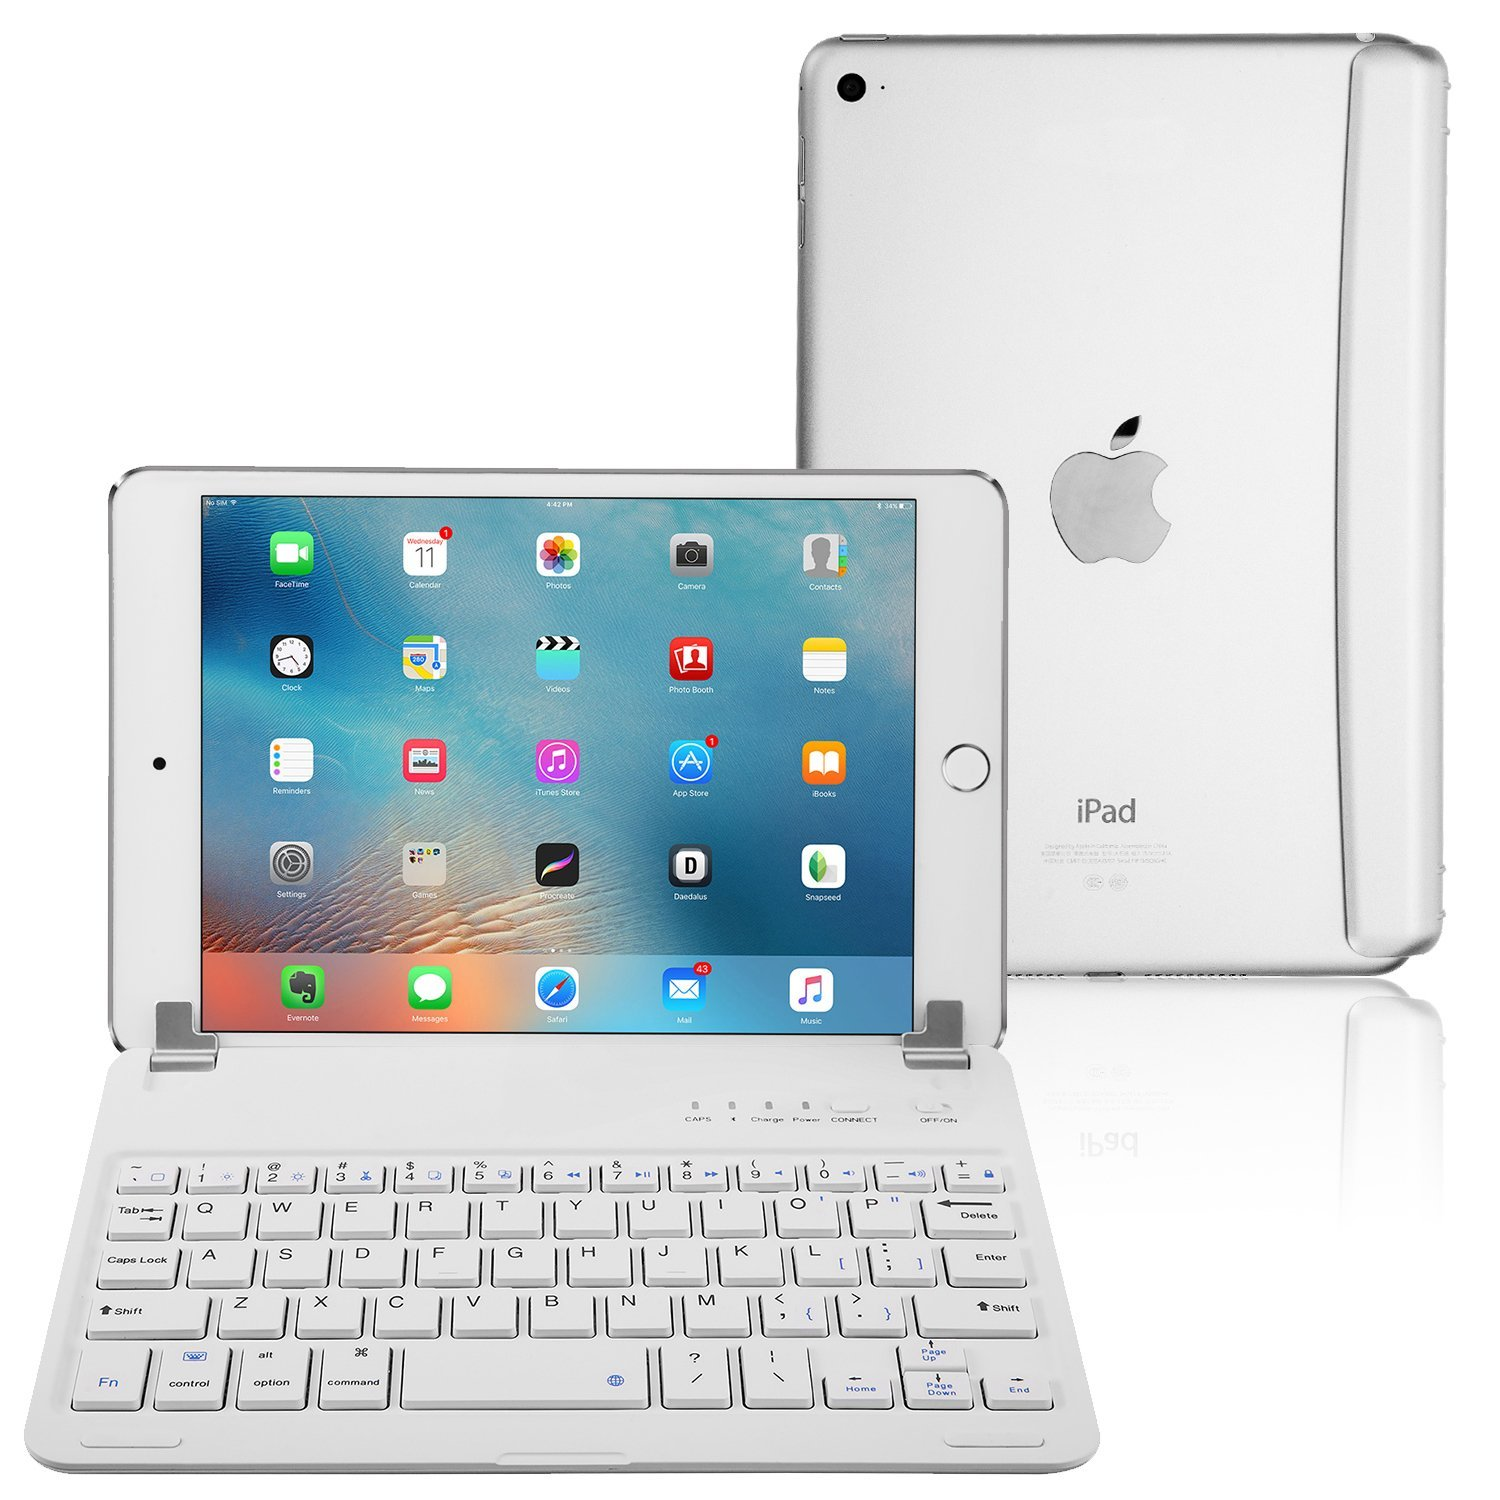 iPad Mini 3/2 / 1 Keyboard, Raydem Ultra-Thin iPad Mini Wireless Bluetooth Keyboard Folio Cover 130 Degree Multi-Angle Swivel Rotating with Auto Wake/Sleep for Apple iPad Mini 1/2 / 3